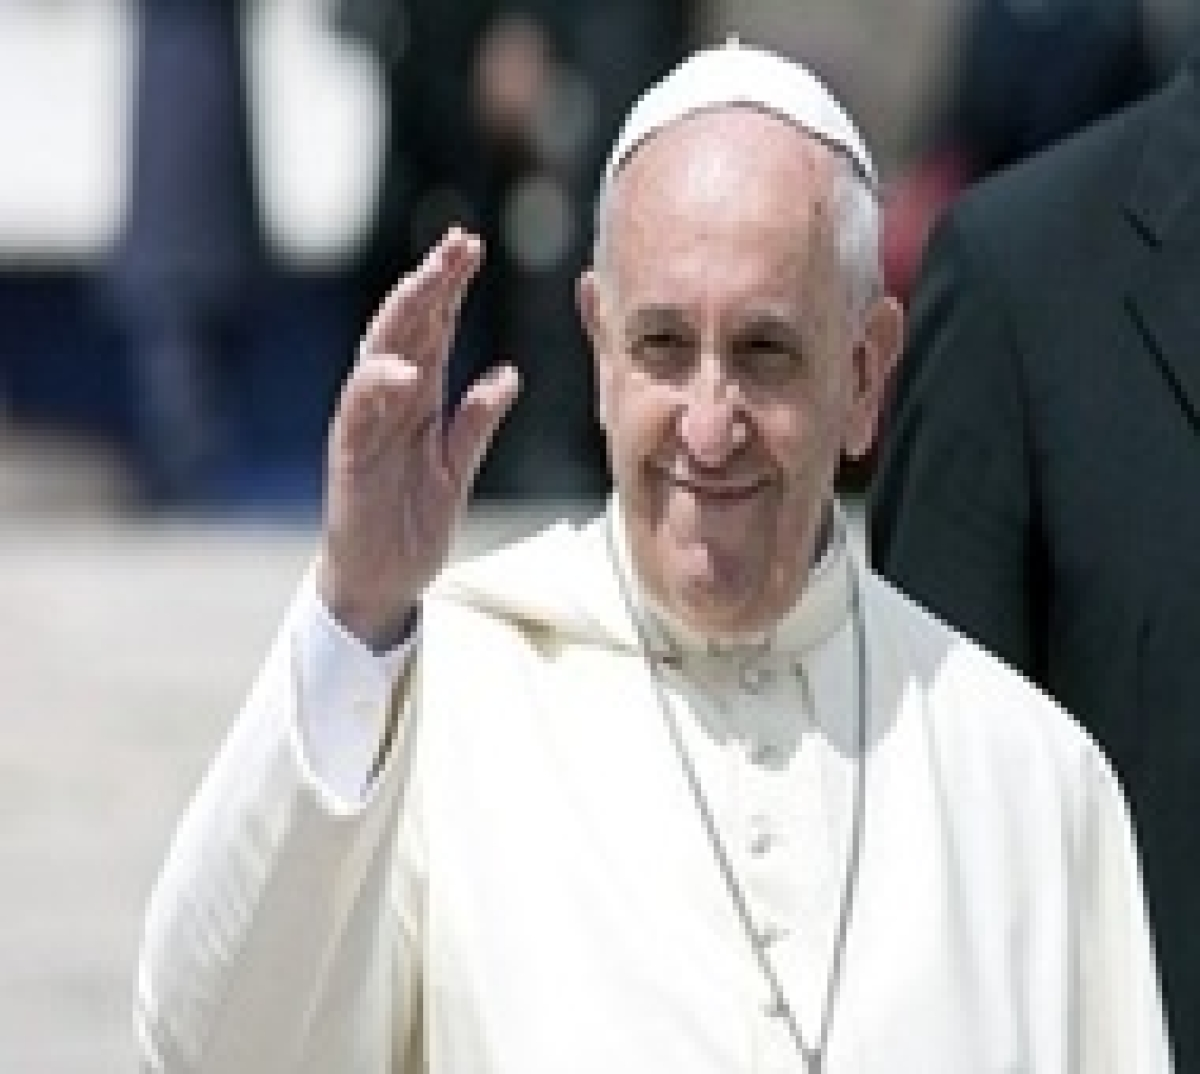 Pope Francis is now on Instagram